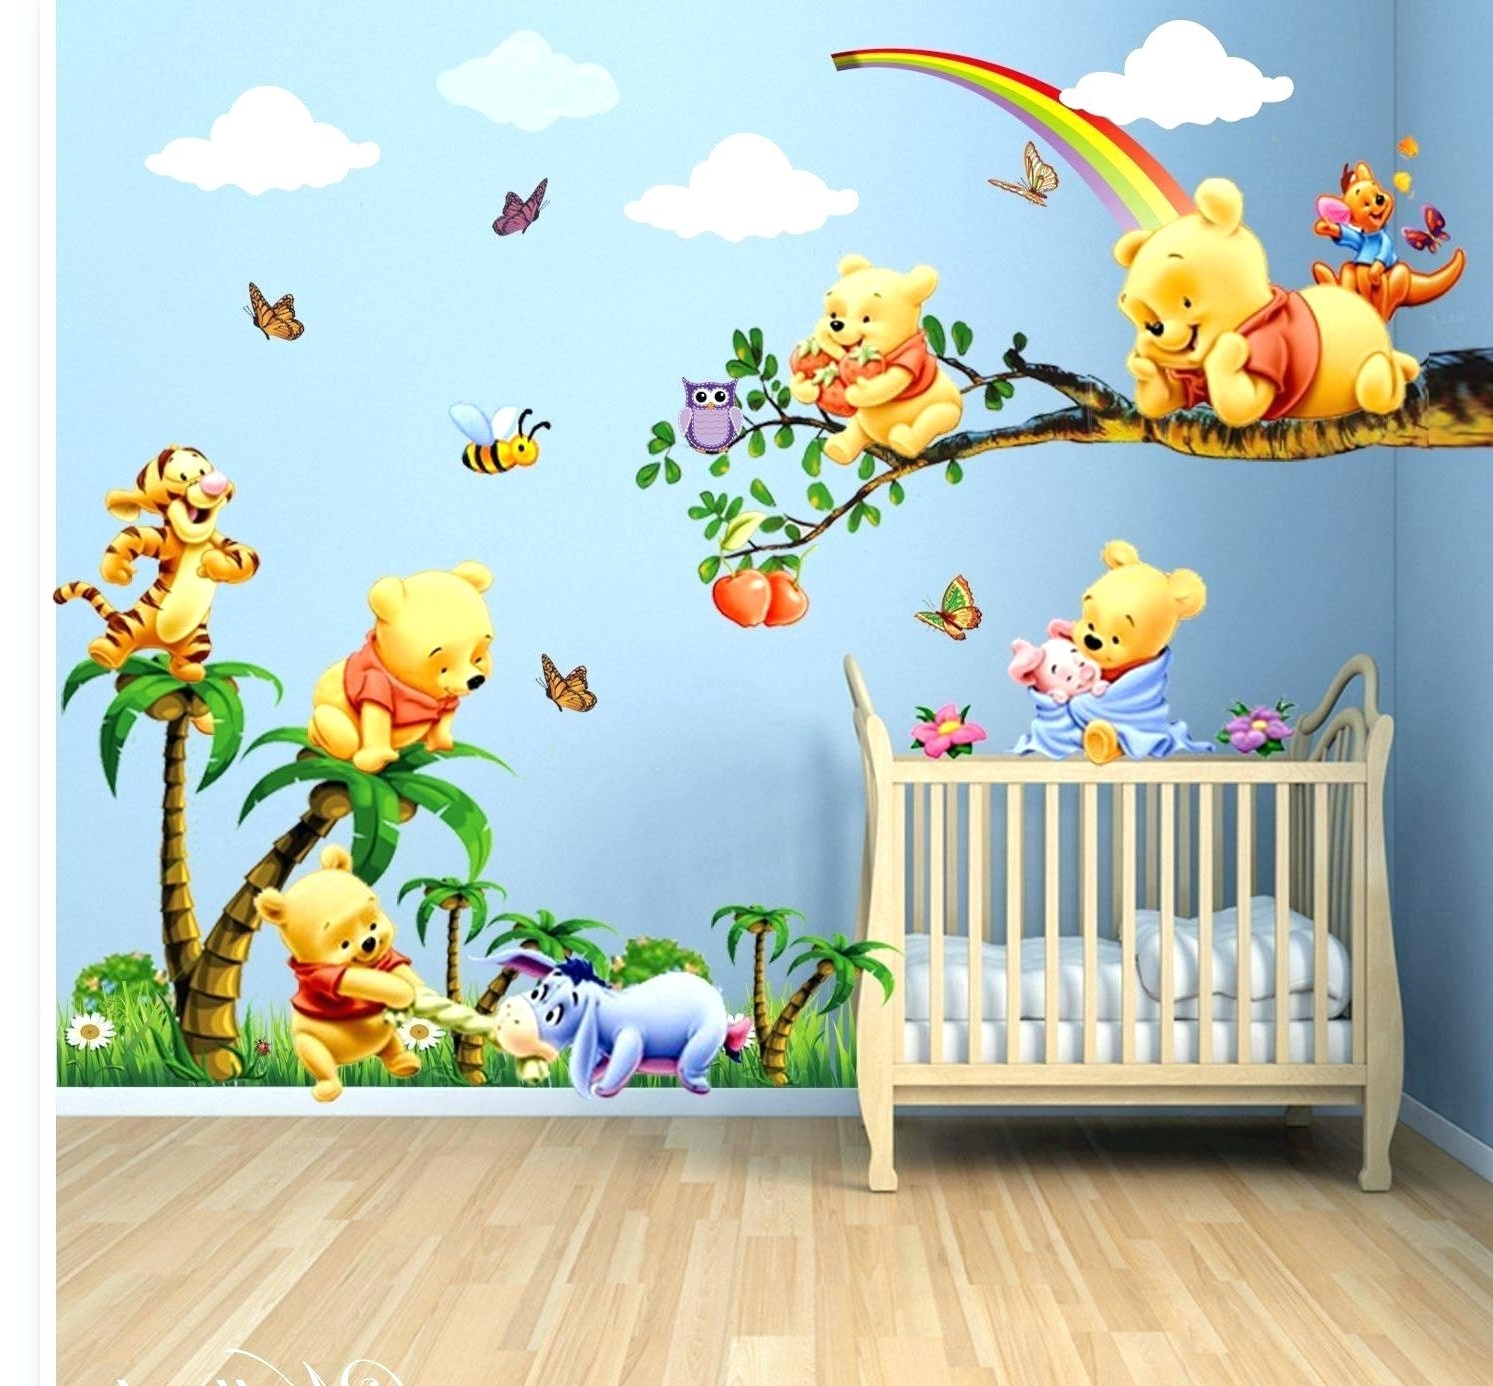 Winnie The Pooh Nursery Wall Decals Nursery Wall Decals For Your Pertaining To Current Winnie The Pooh Vinyl Wall Art (View 12 of 15)